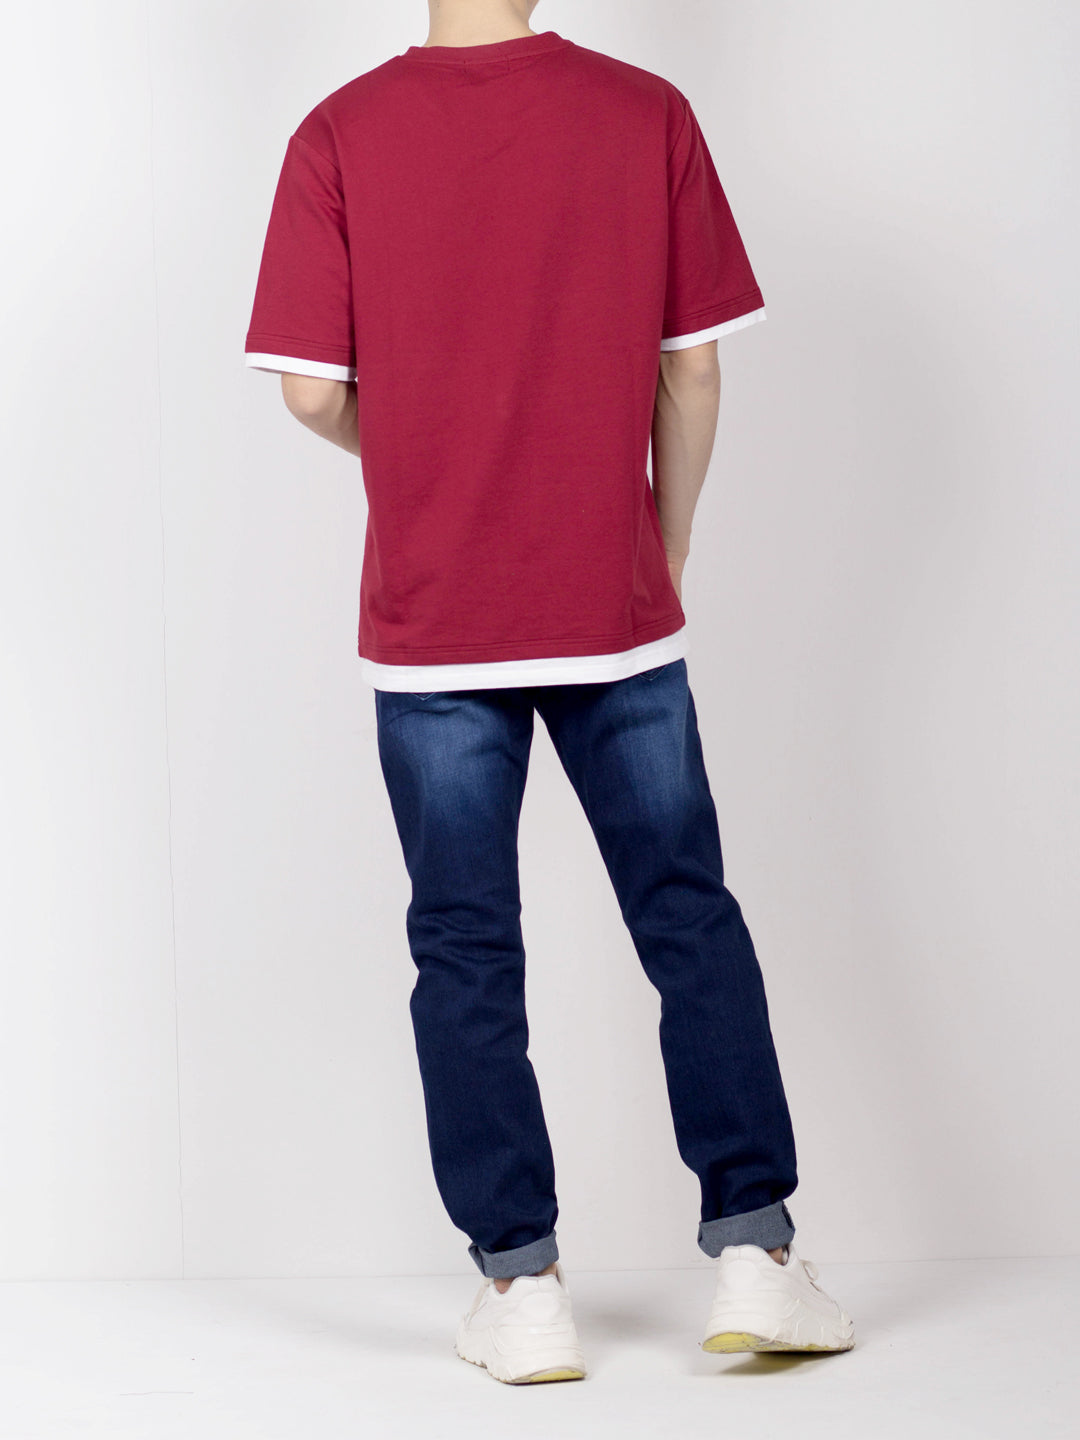 Men Oversize Fashion Short Sleeve Tee  - Maroon - CPH20H2645